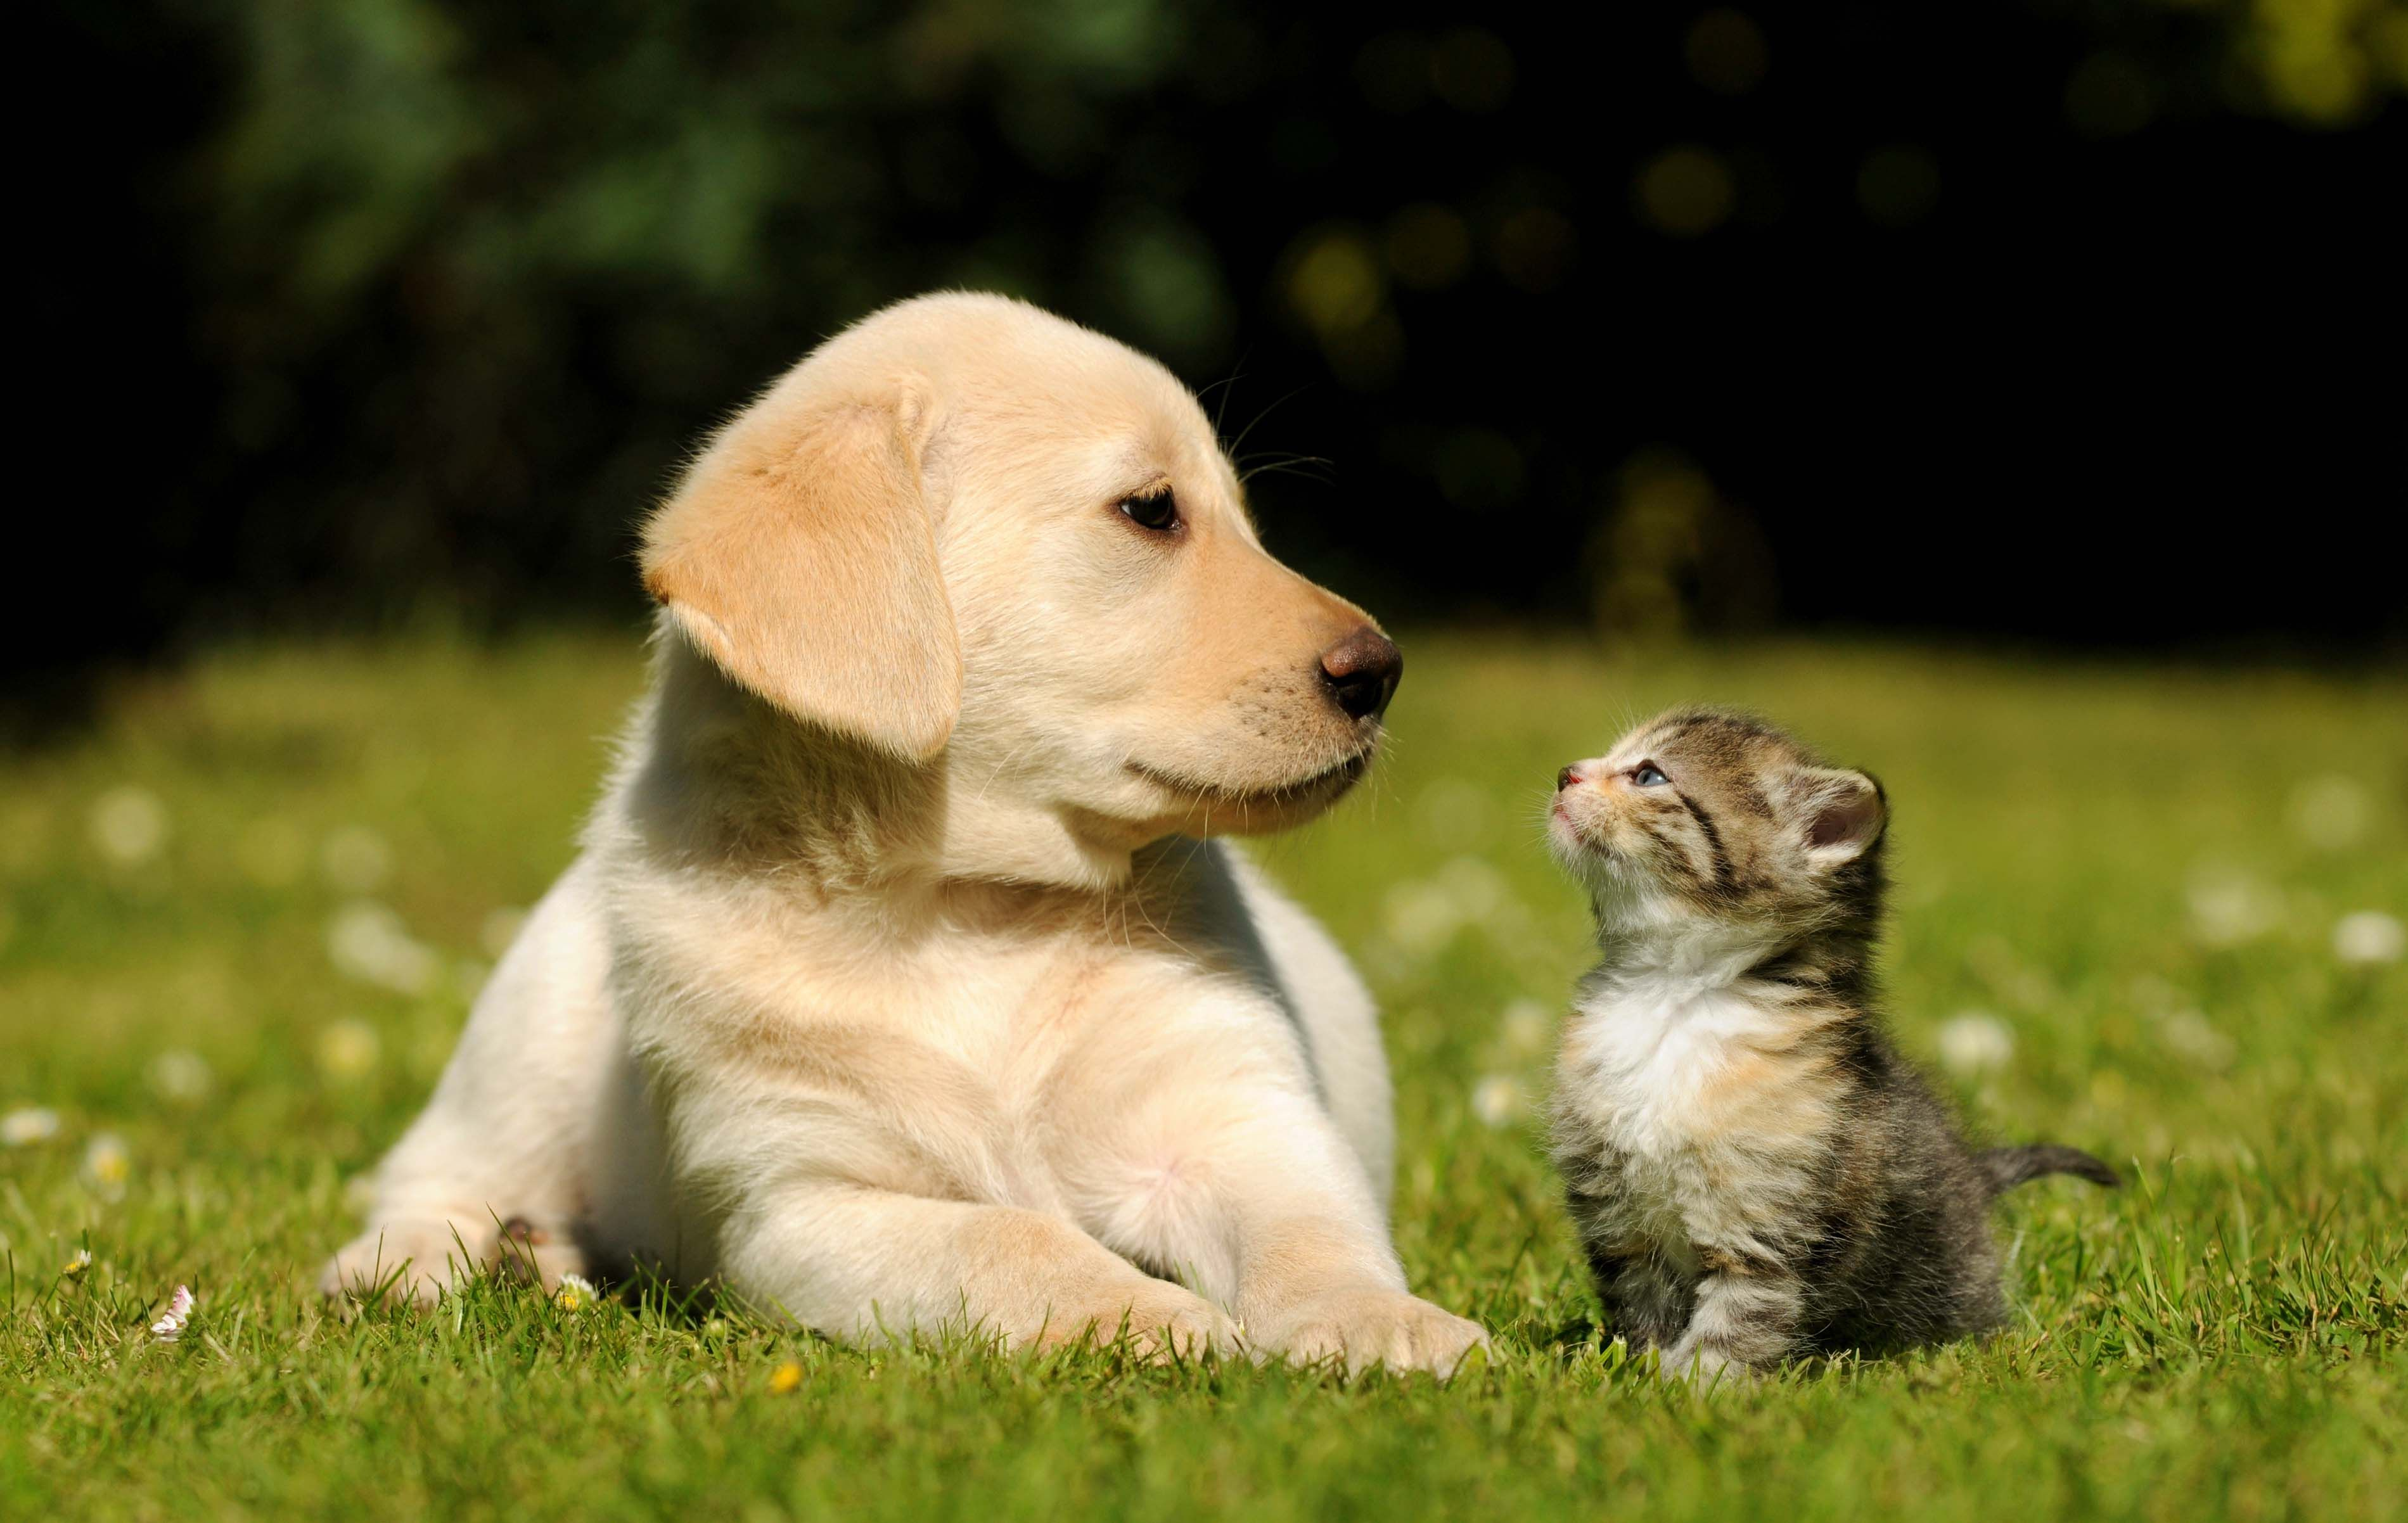 cat and dog wallpaper free download | hd wallpapers | pinterest